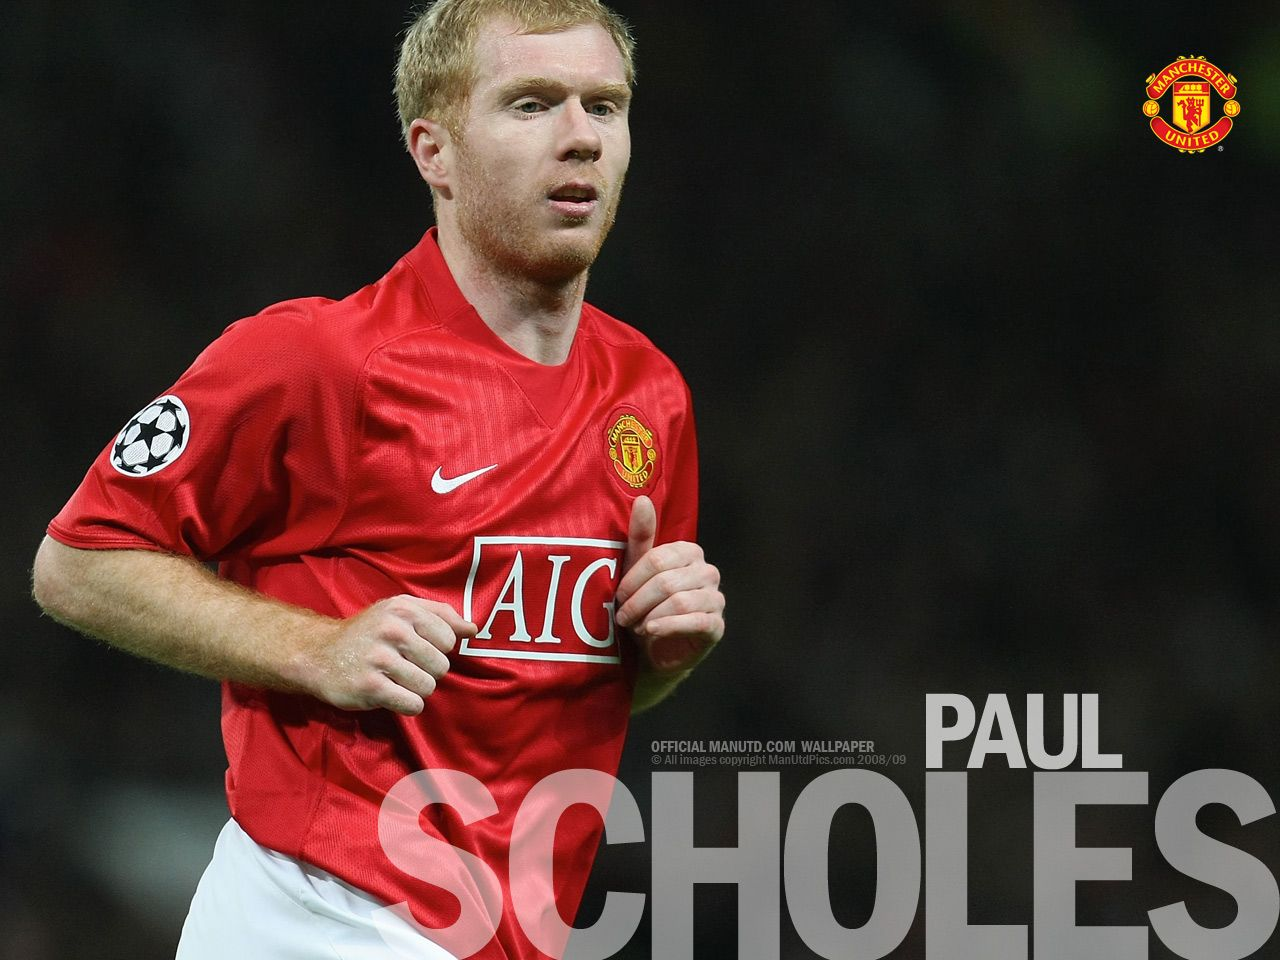 scholes wallpaper, man united wallpaper, united scholes, paul scoles, paul wallpaper